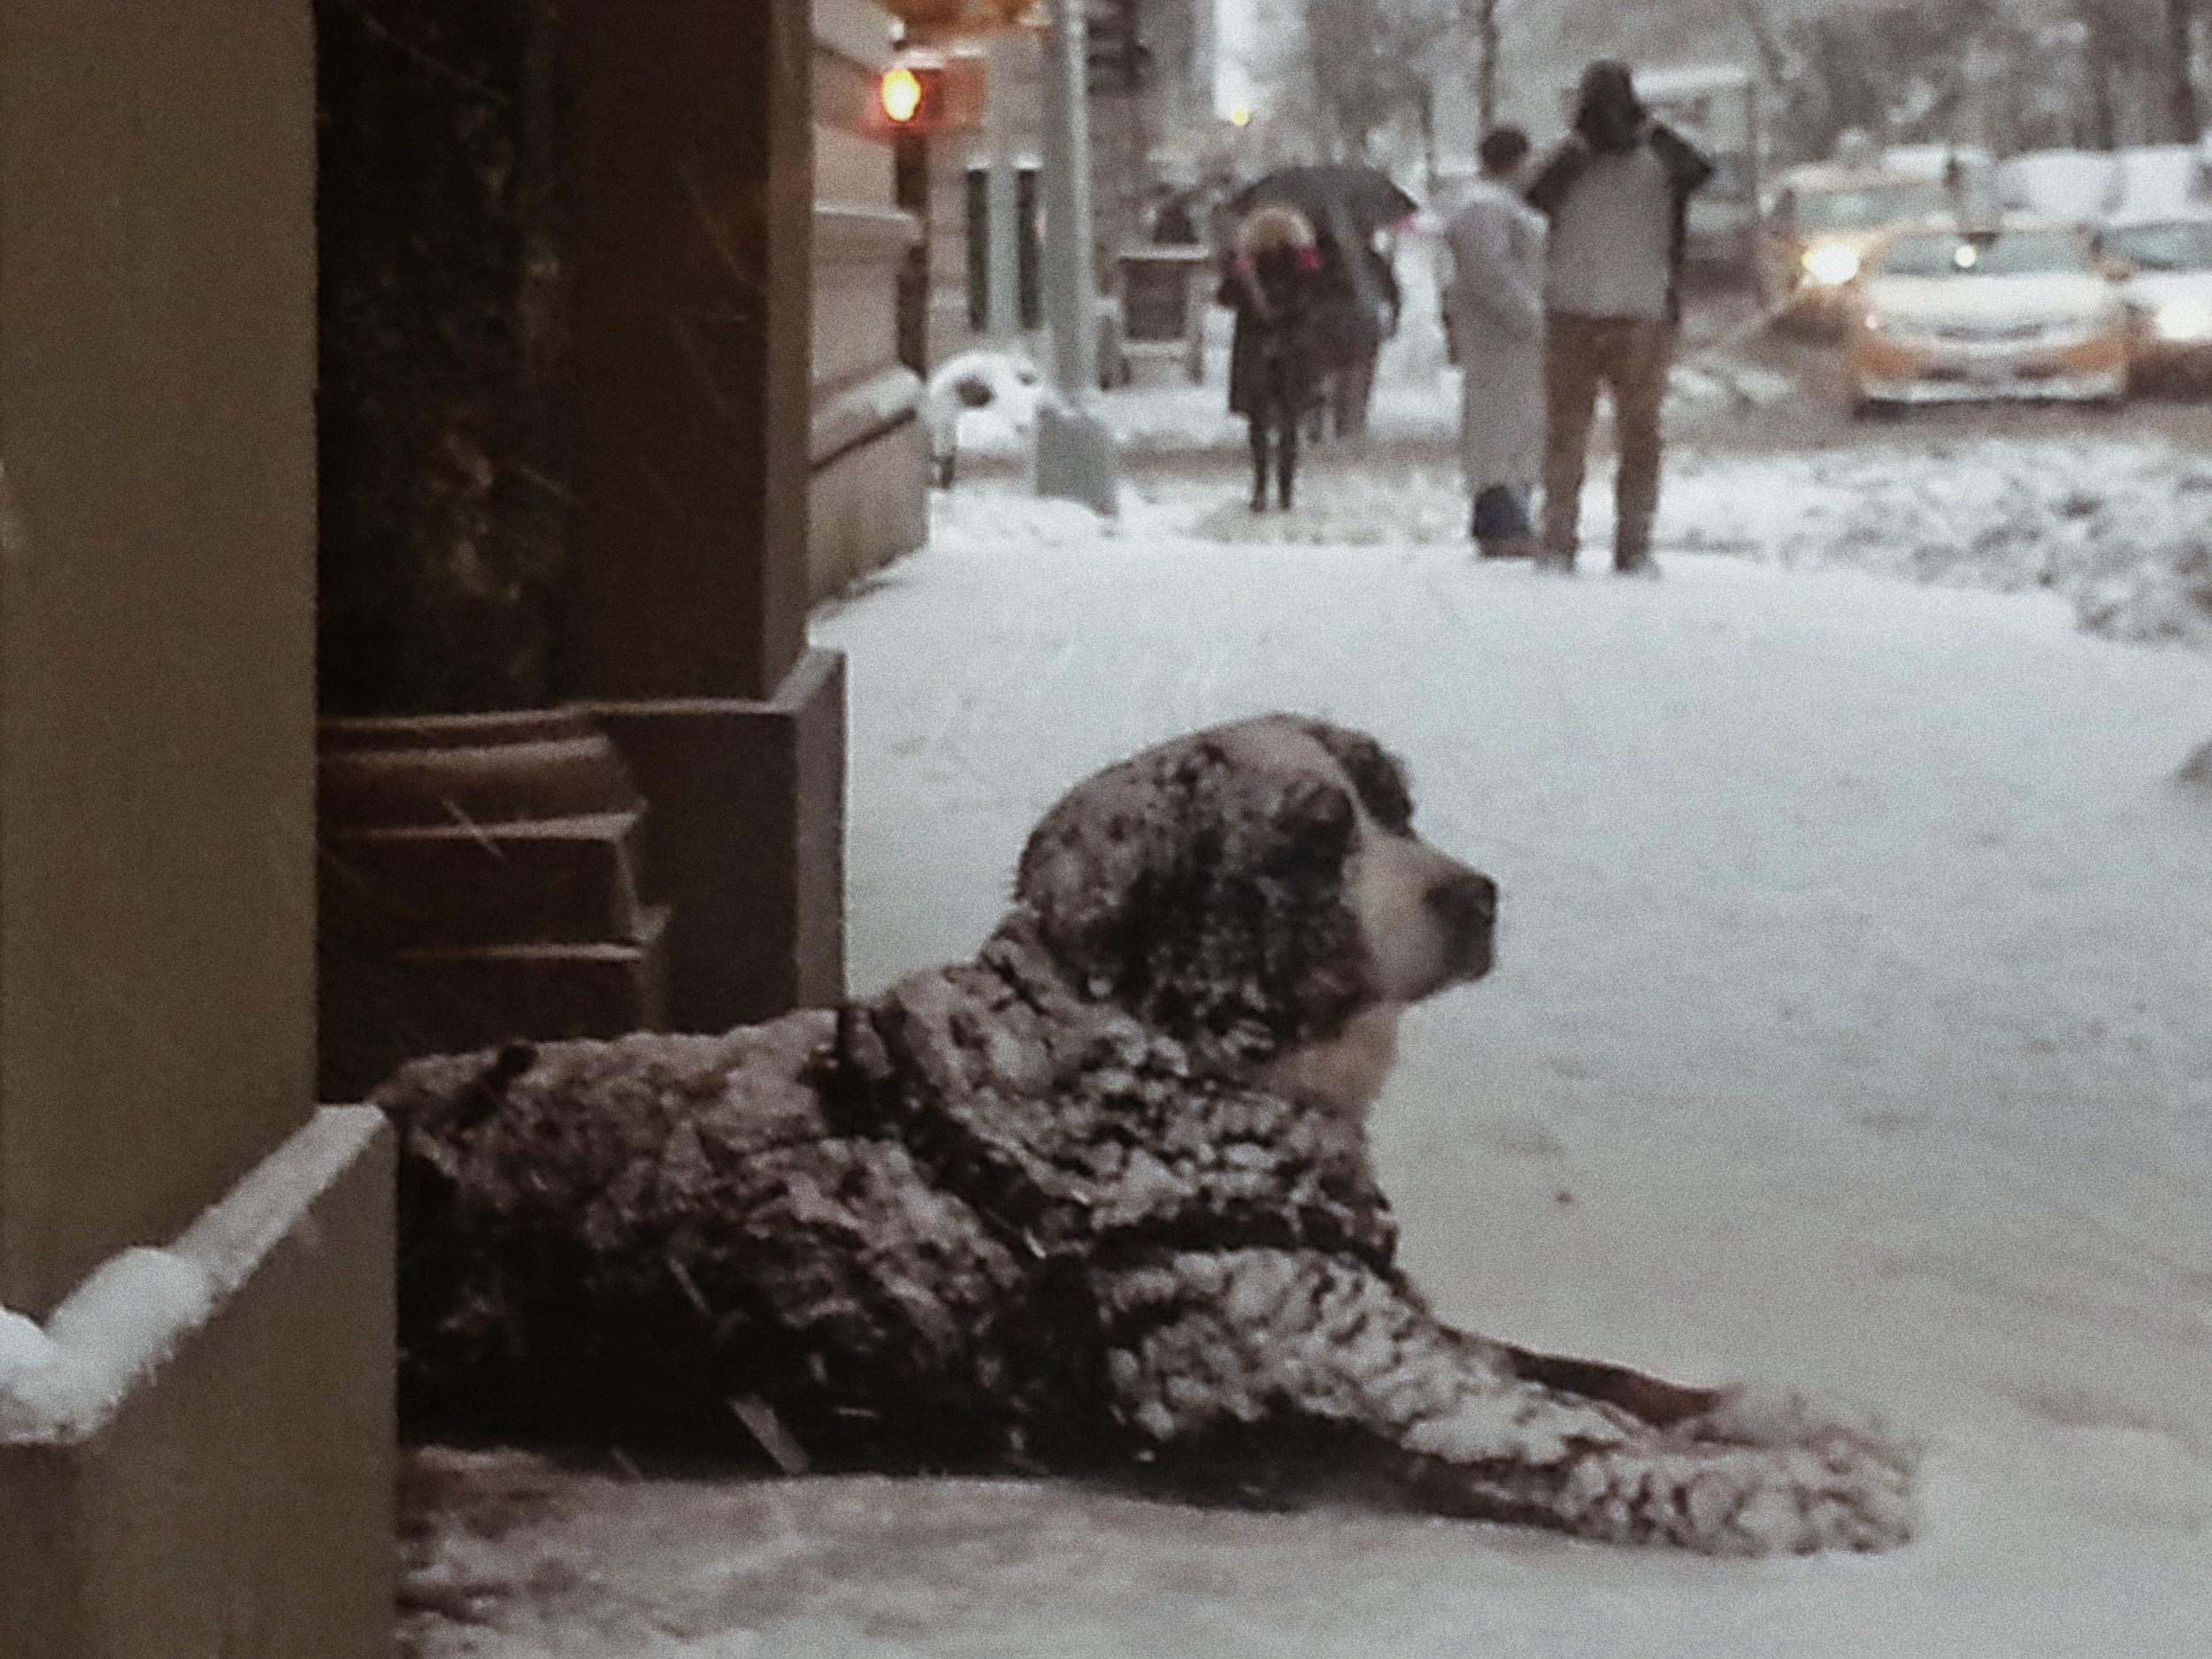 He doesn't seem to mind the cold so much - taken on the Upper East Side